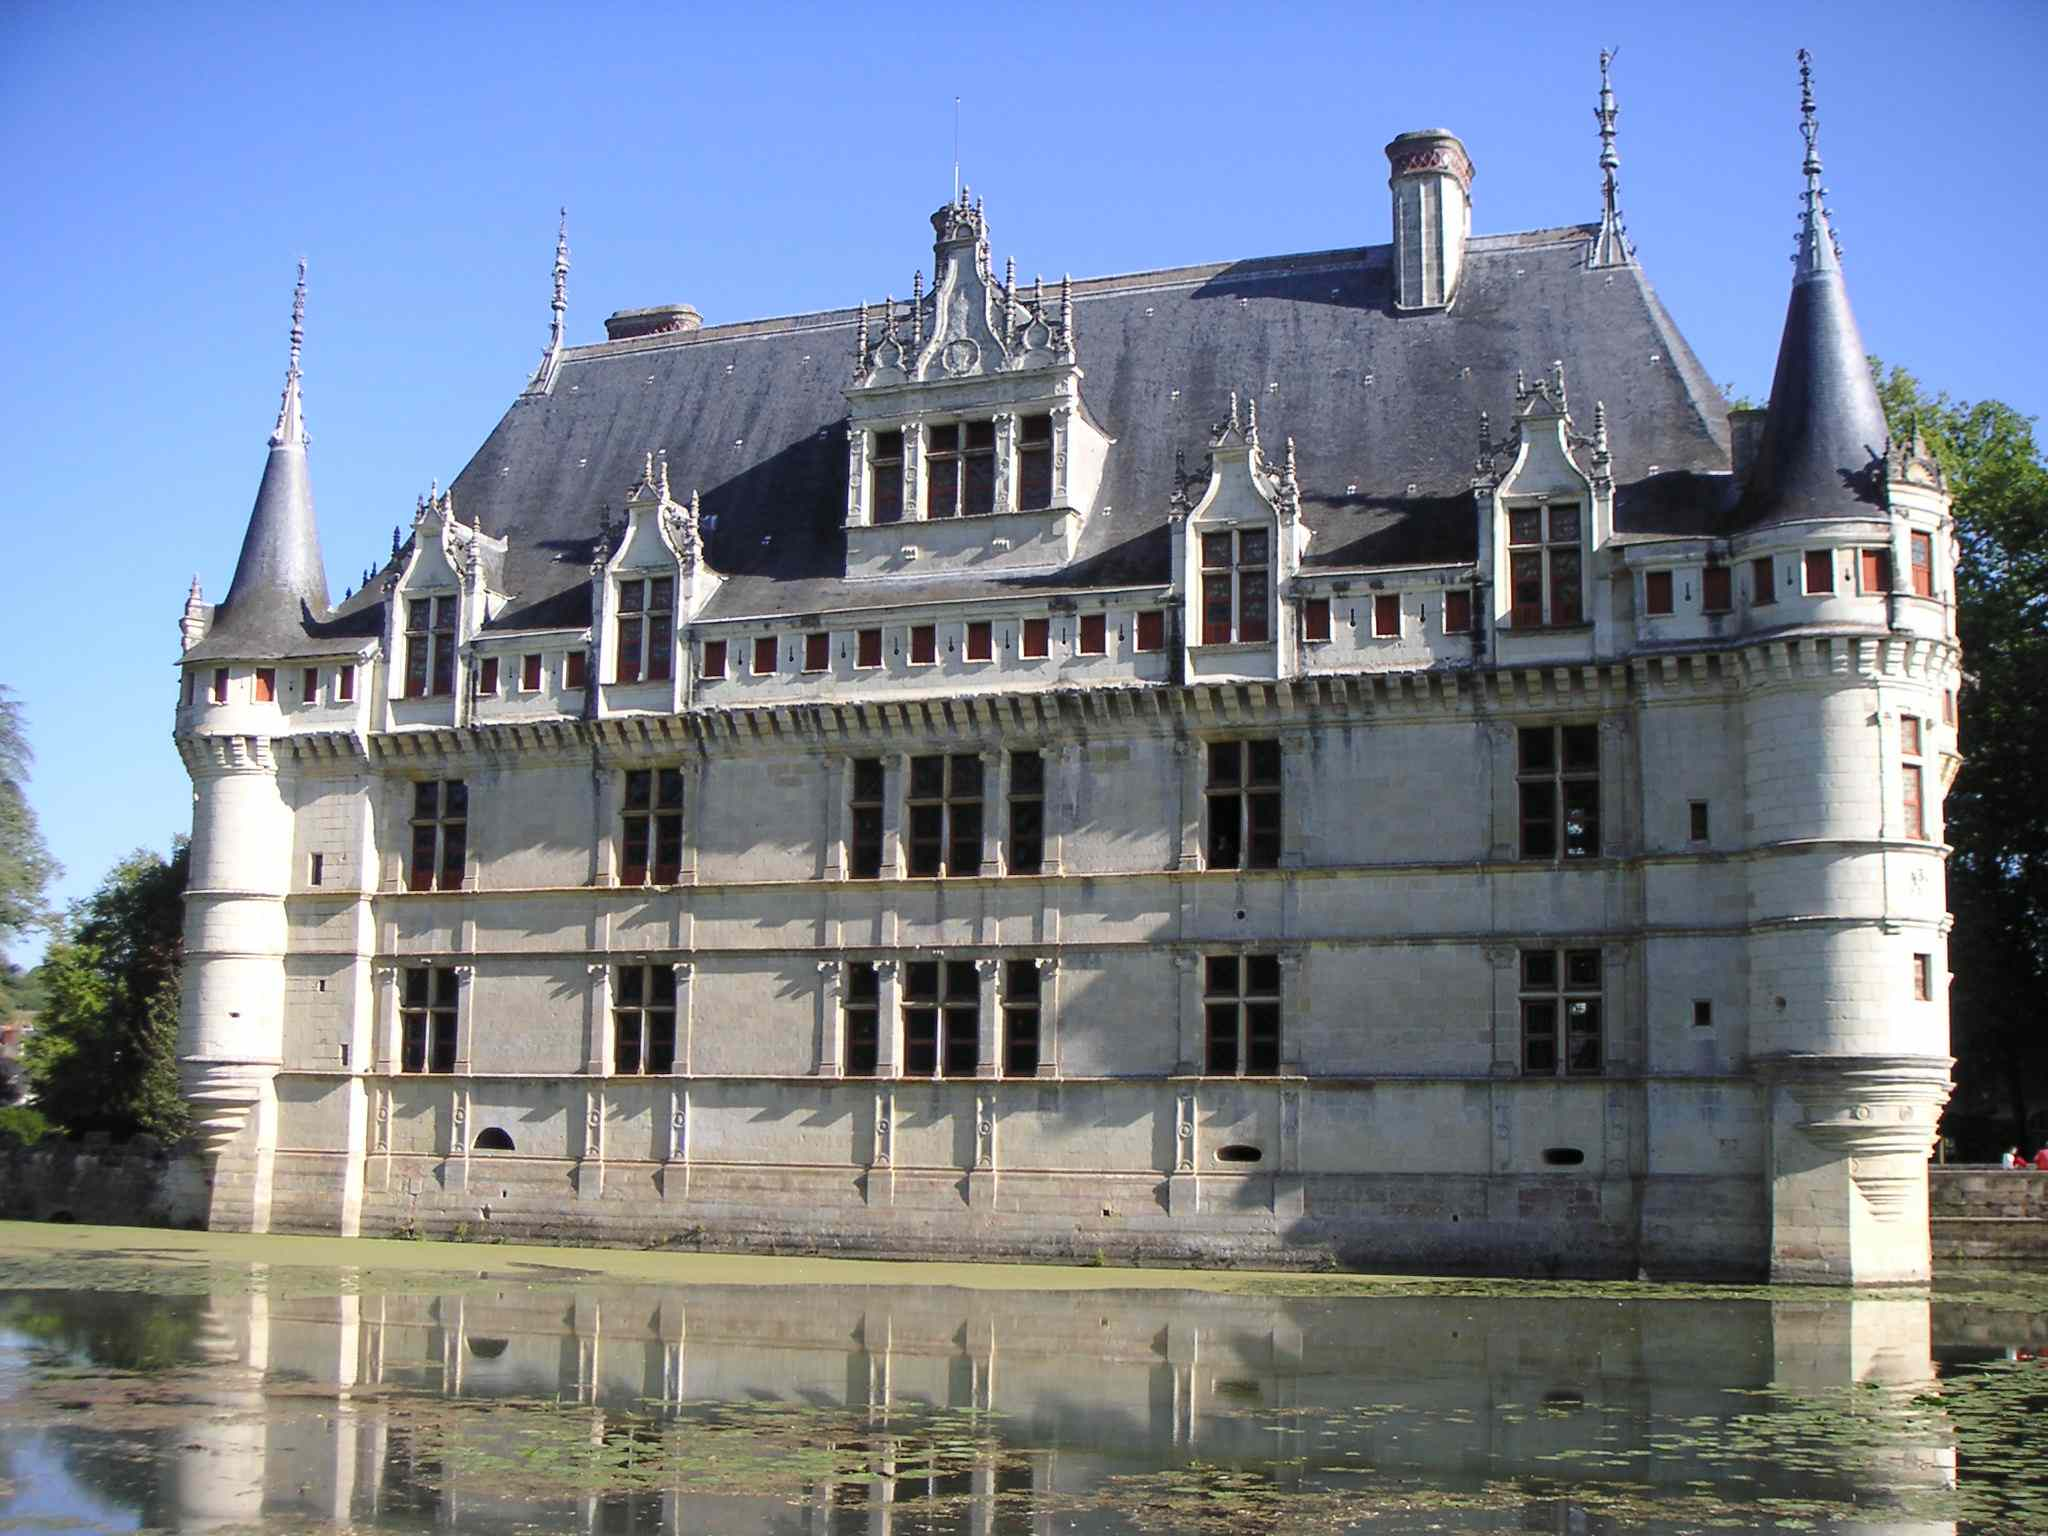 http://dic.academic.ru/pictures/wiki/files/70/Fa%C3%A7ade_cot%C3%A9_douve_Azay-le-rideau.JPG